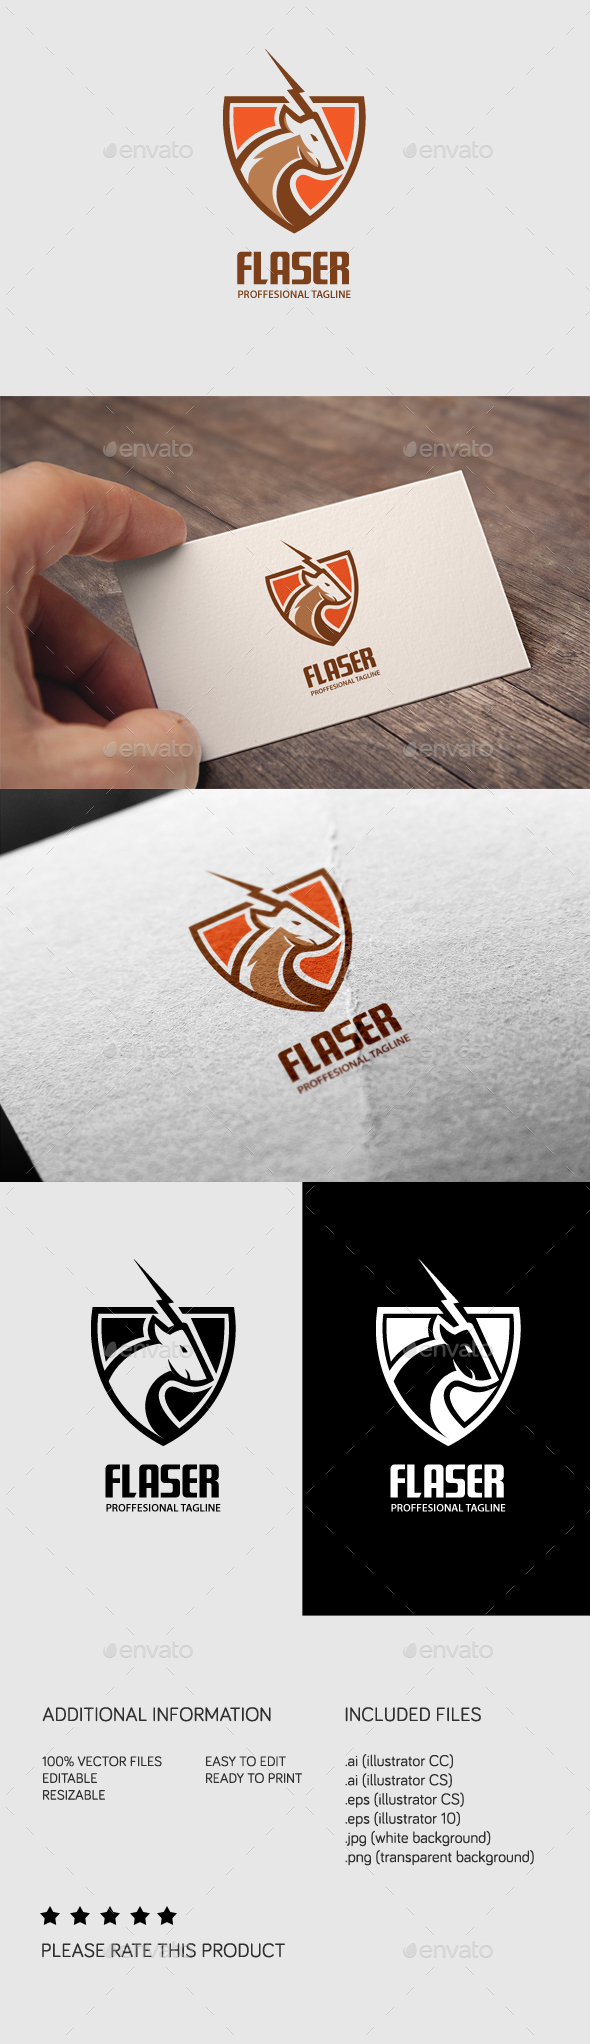 Flaser Logo - Animals Logo Templates